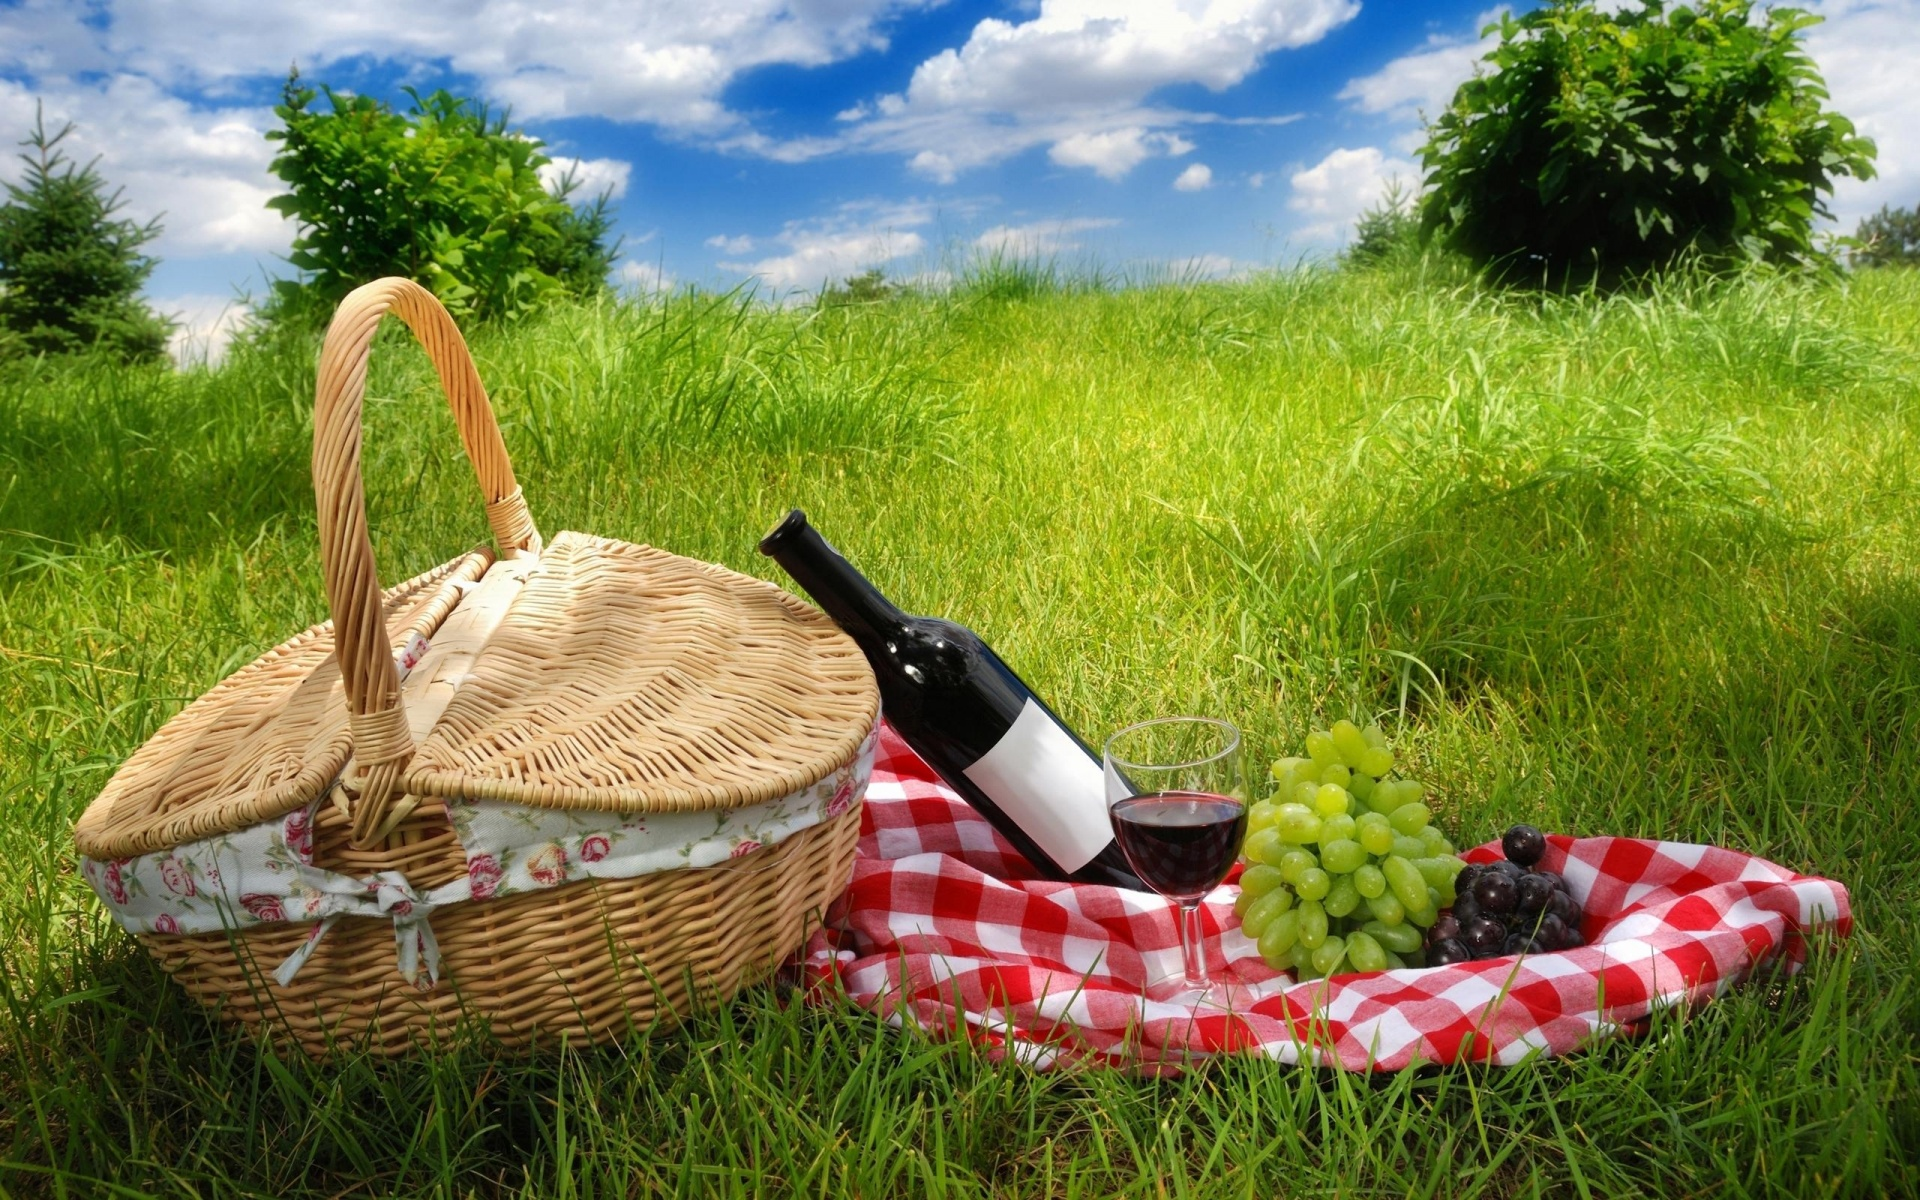 6 Benefits Direct You Feel After Picnic Living